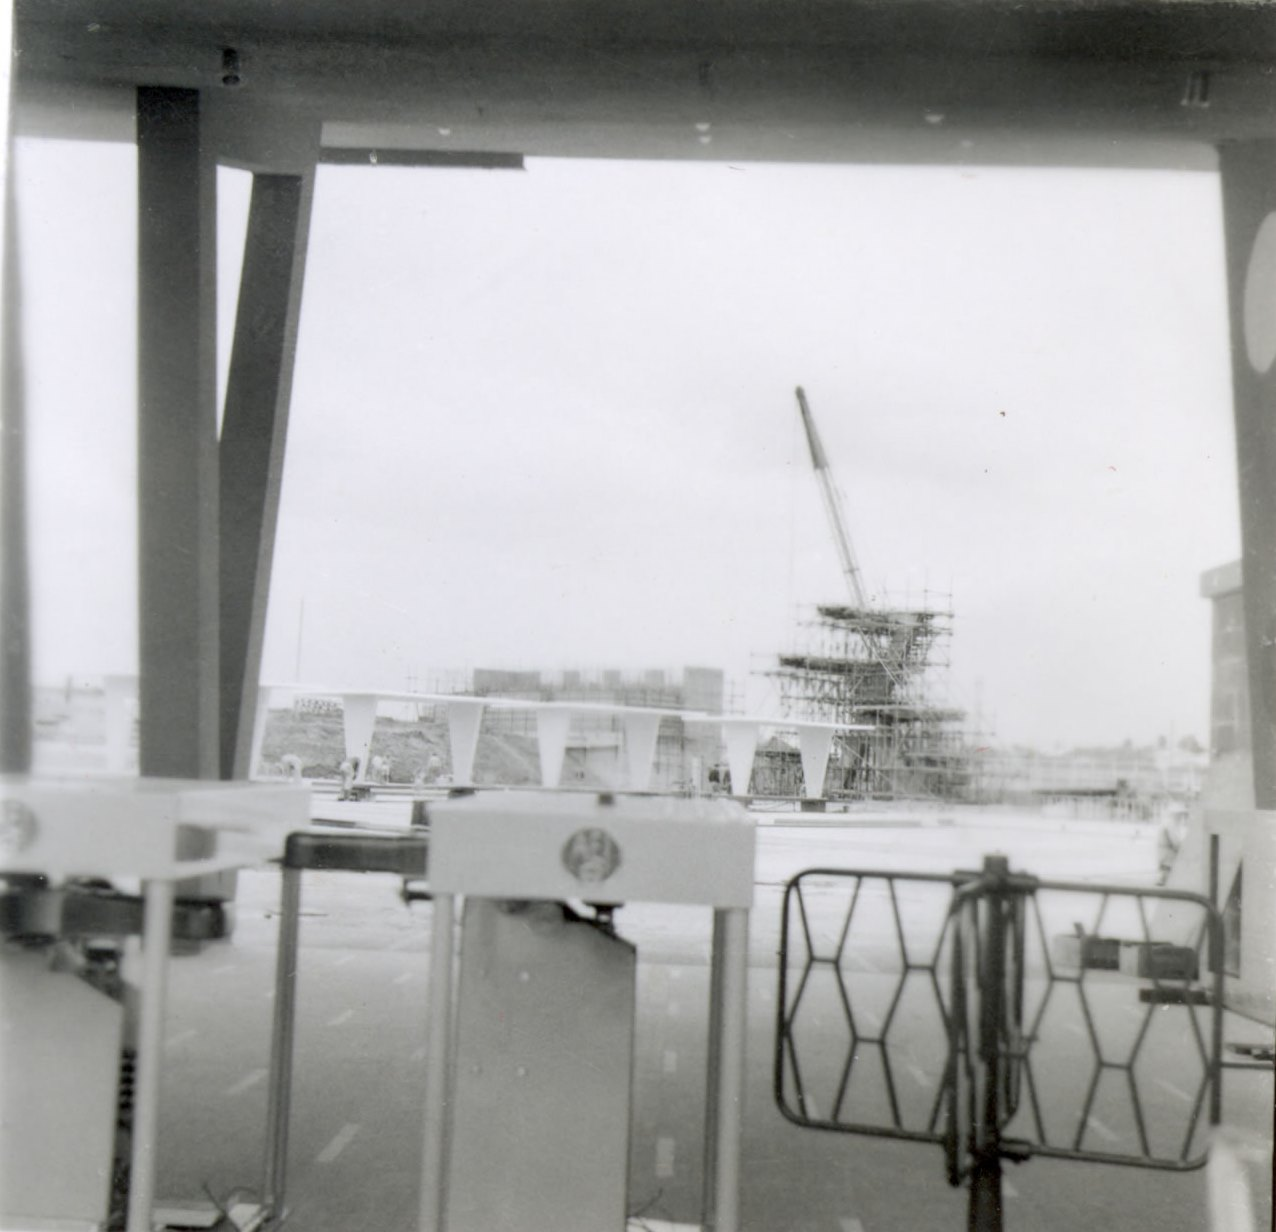 Fibreglass swimming pool construction port macquarie freeform style - Ruth Everuss Aquatic Centre Under Construction In 1958 Source Cumberland Council Library Service